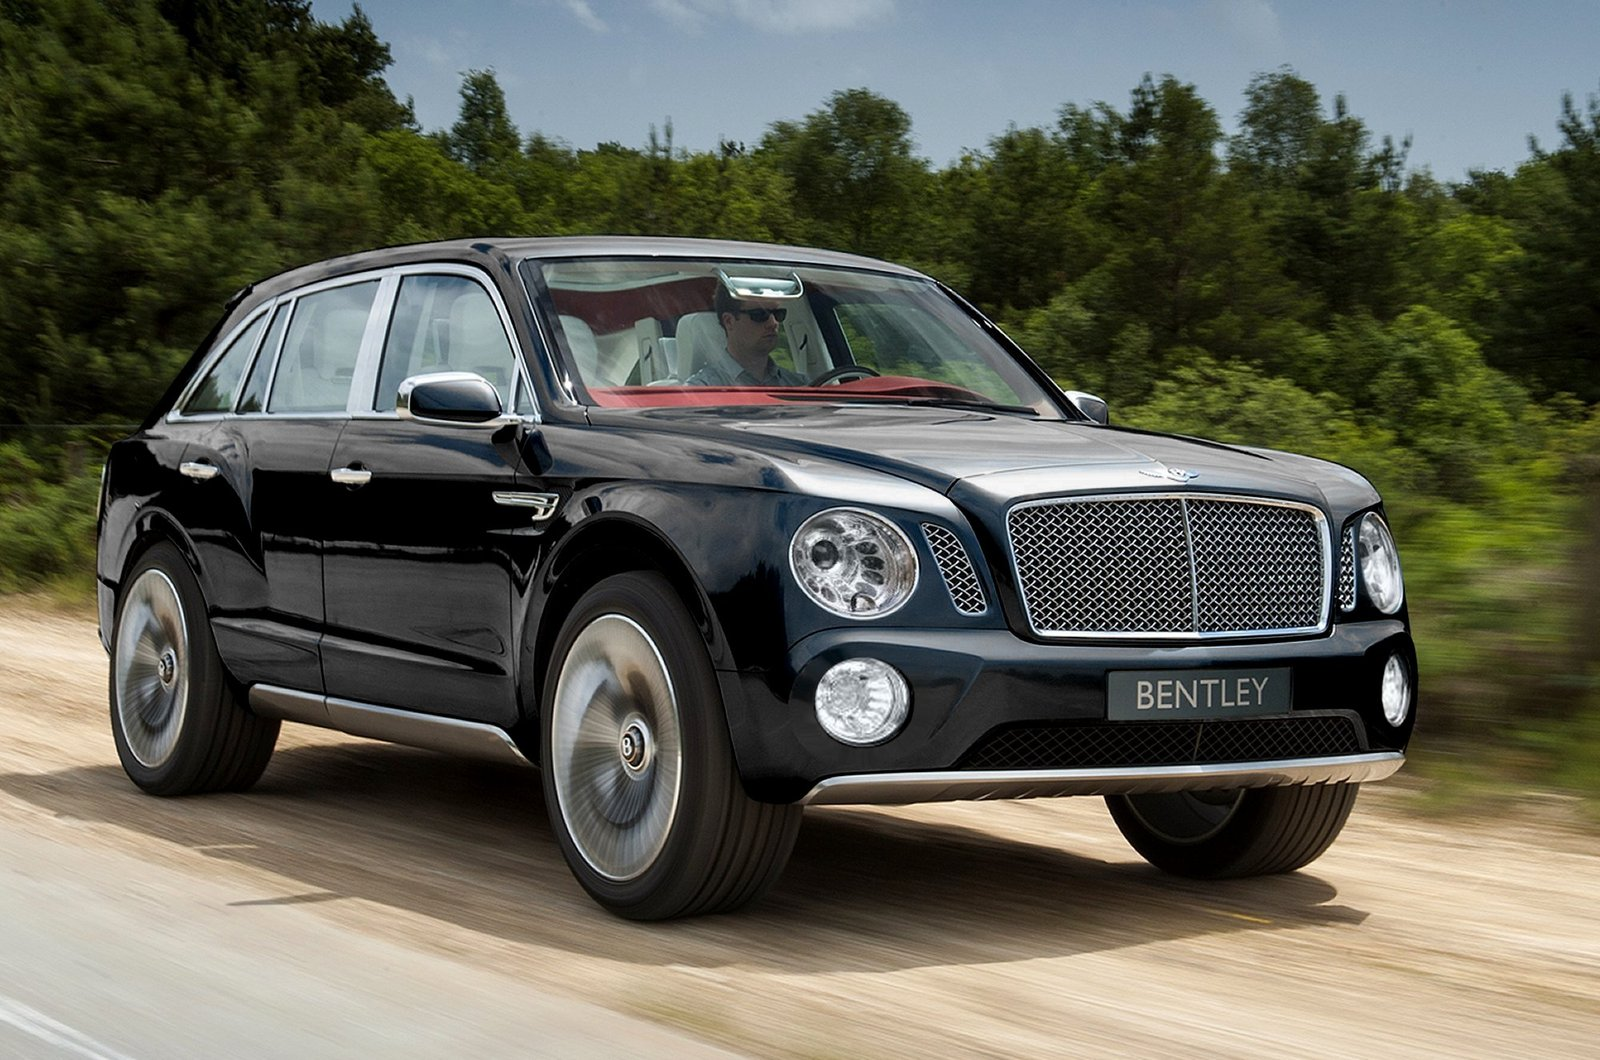 Bentley-SUV-front